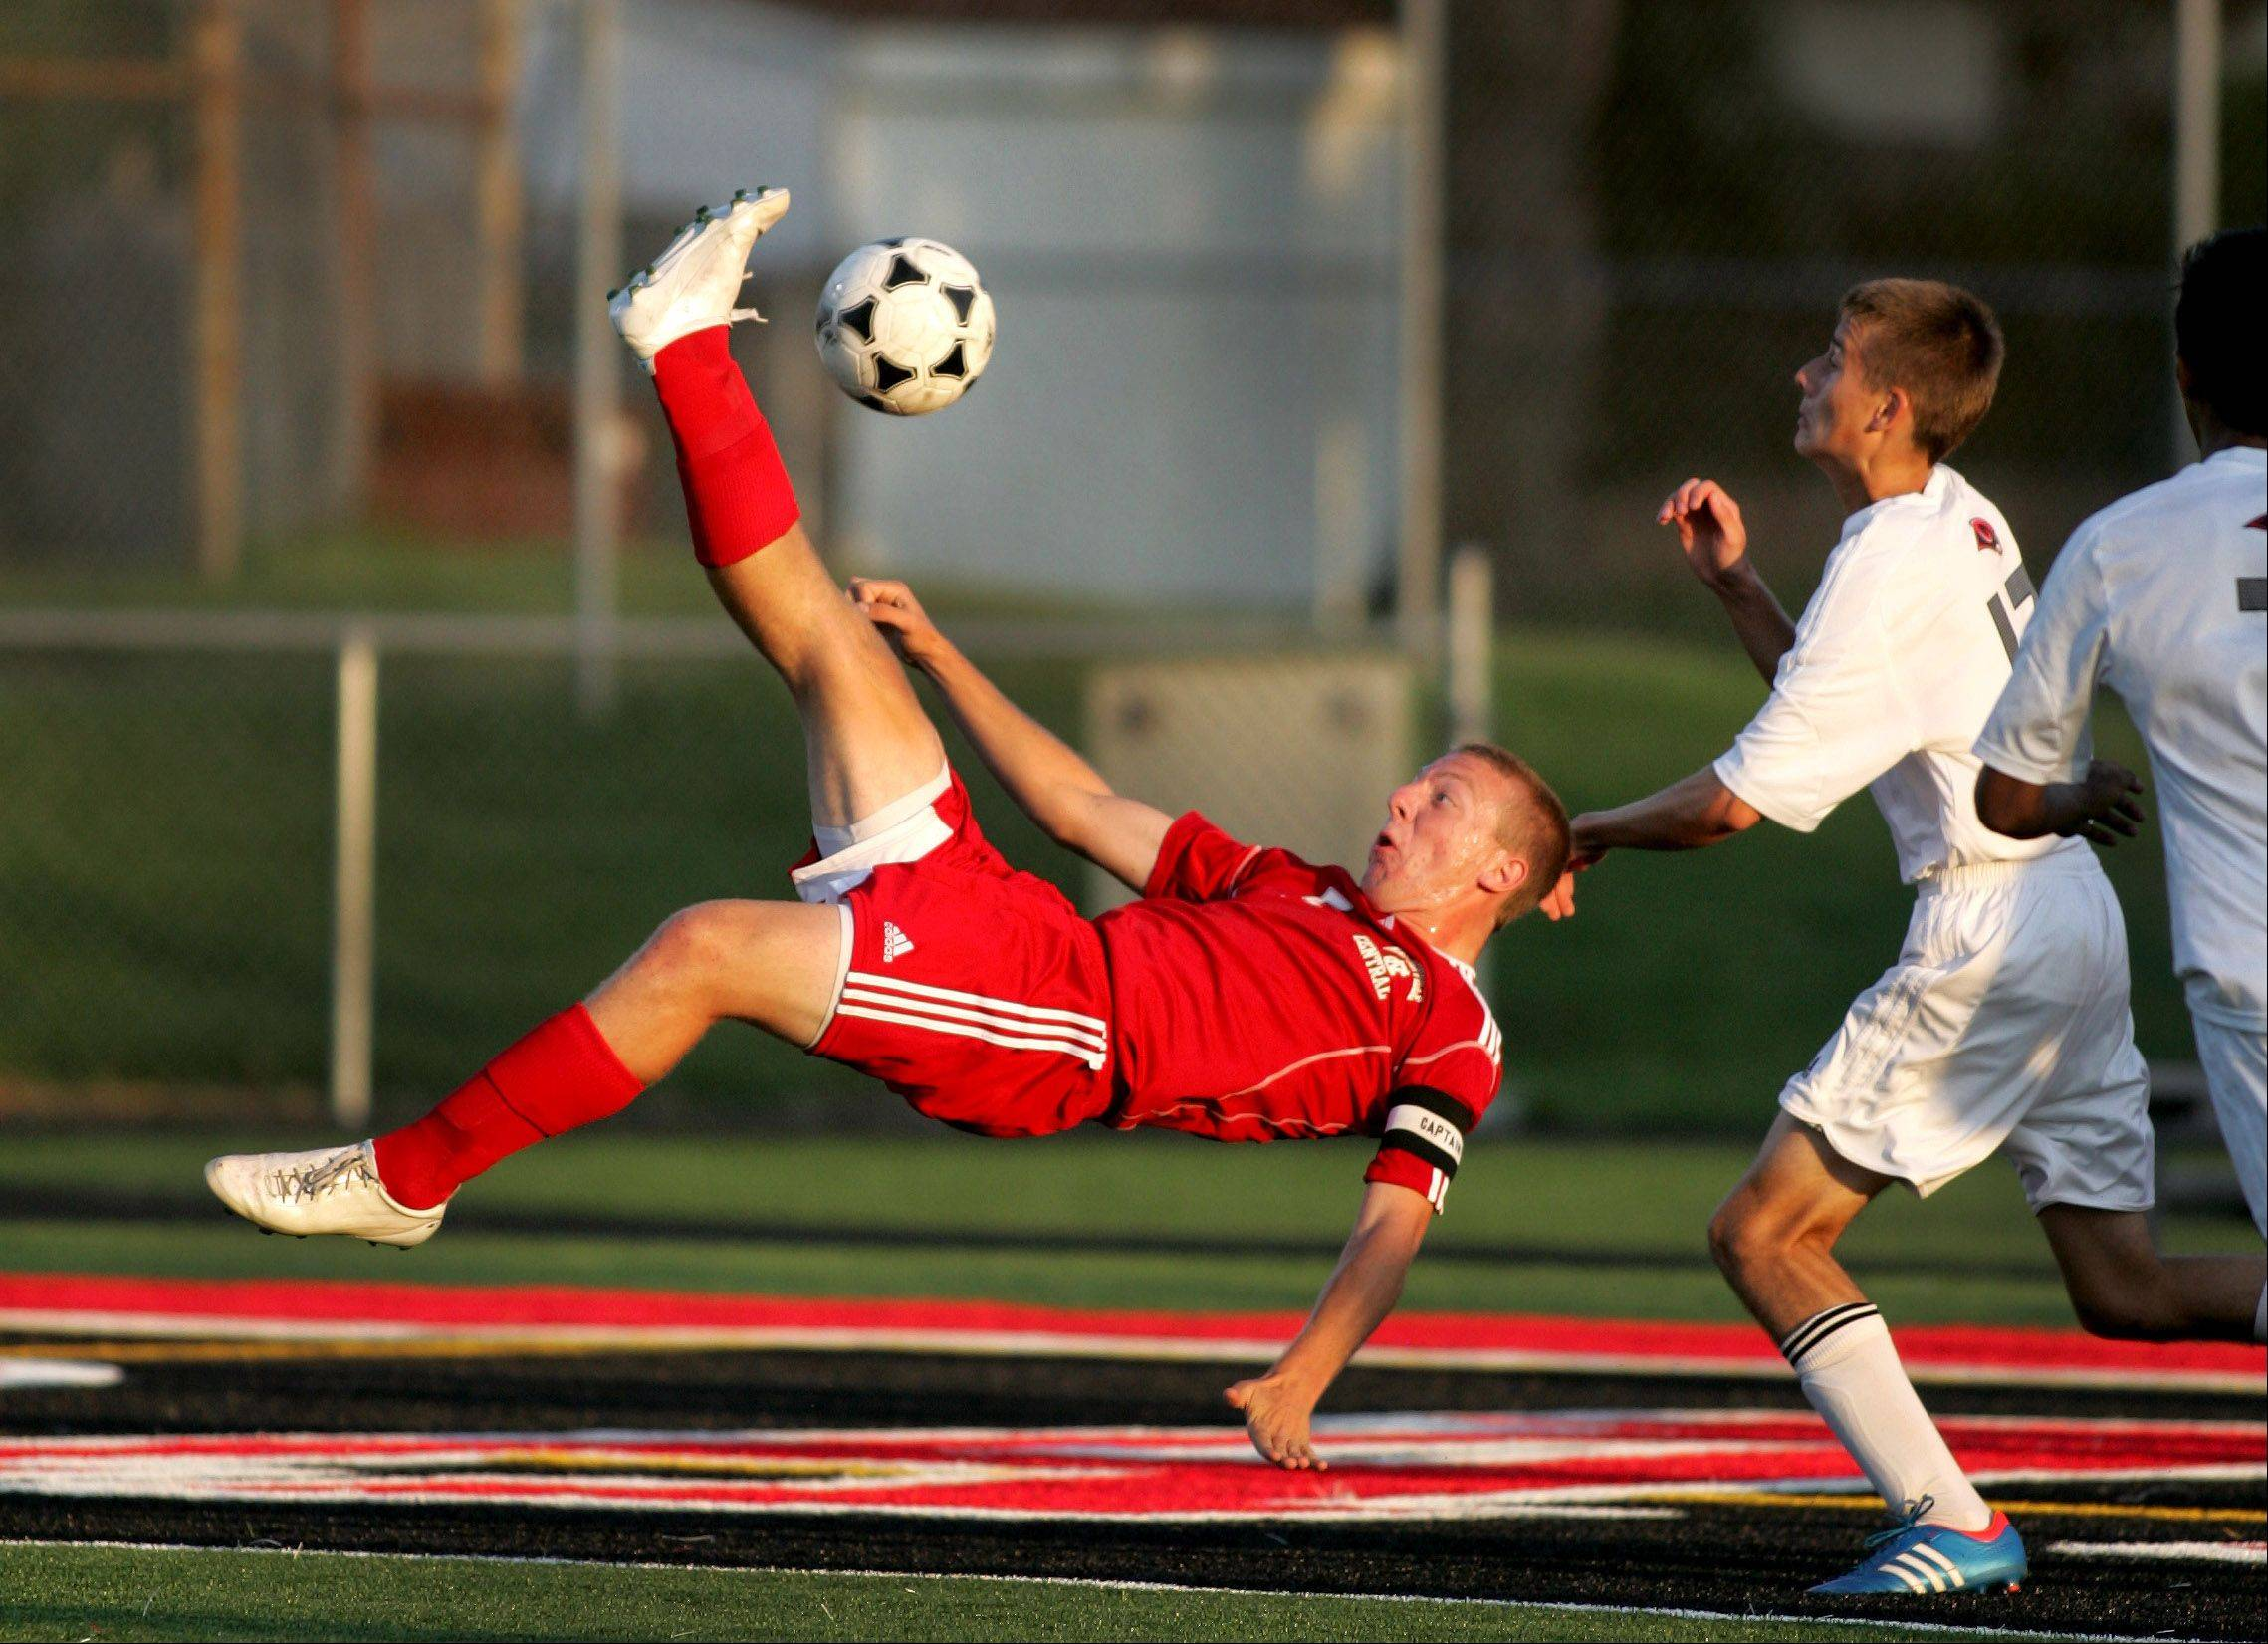 Pat Flynn of Naperville Central attempts to kick it back for a goal over Ivailo Alexandrov of Glenbard East, right.